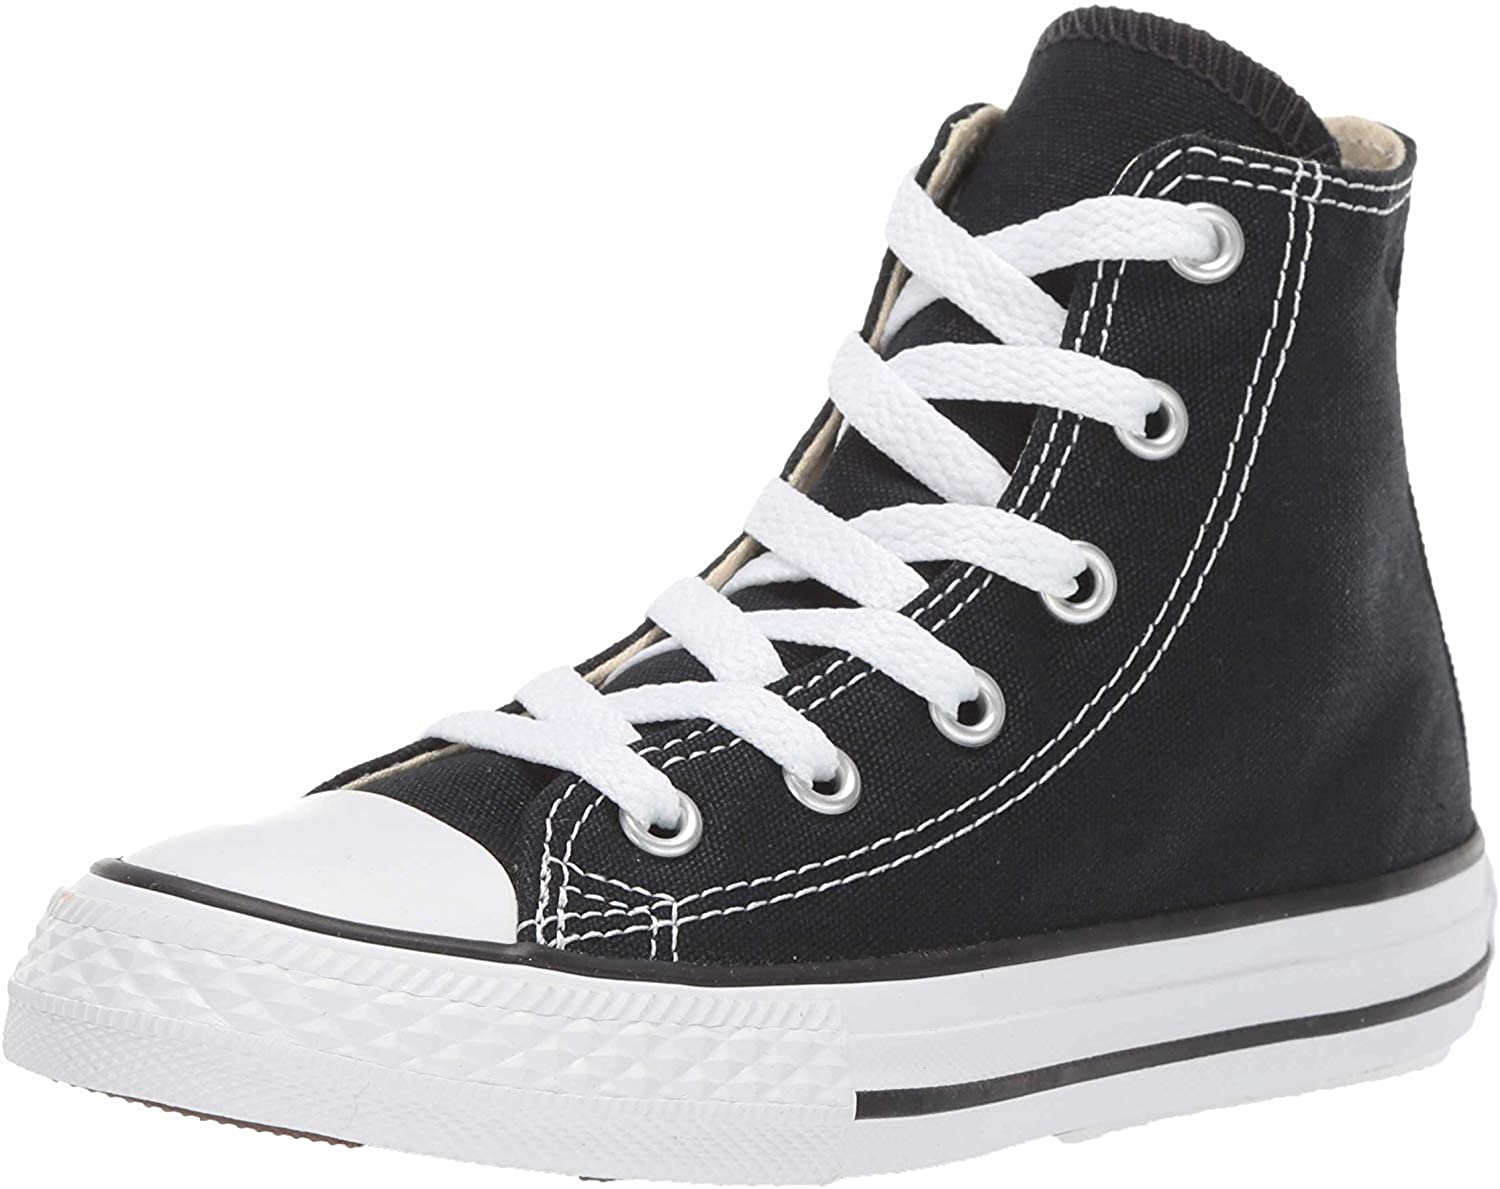 Converse Kids Chuck Taylor All Star Canvas High Top Sneaker